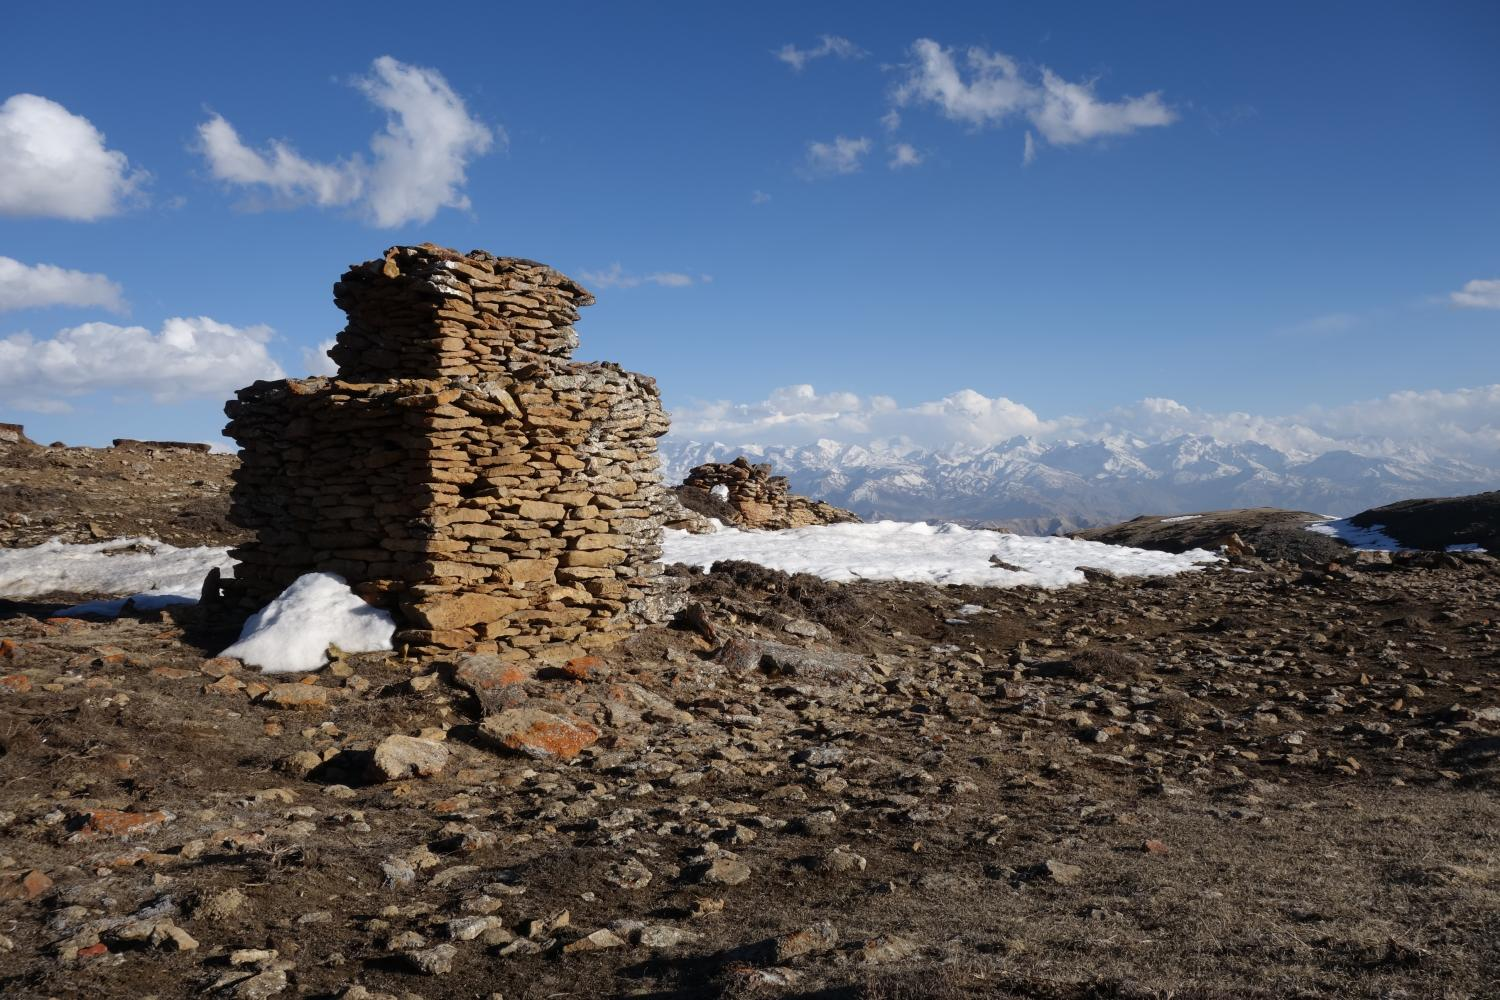 A secondary chorten marks the path of the Trans-Himalayan Salt Trade at the descent from the Kora-la to Neychung, Mustang